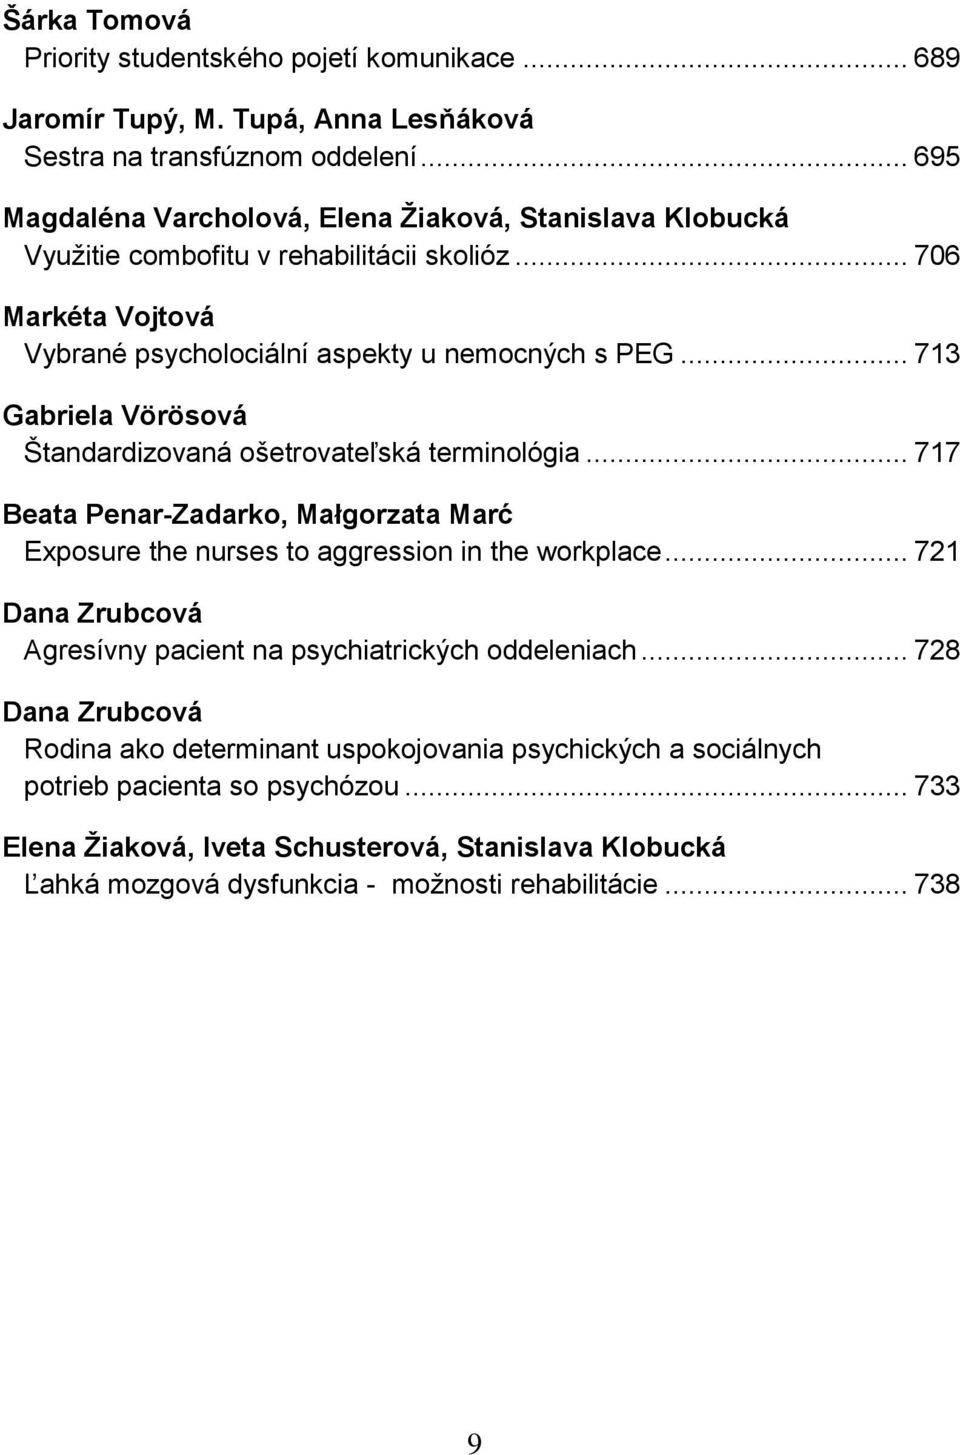 .. 713 Gabriela Vörösová Ńtandardizovaná ońetrovateľská terminológia... 717 Beata Penar-Zadarko, Małgorzata Marć Exposure the nurses to aggression in the workplace.